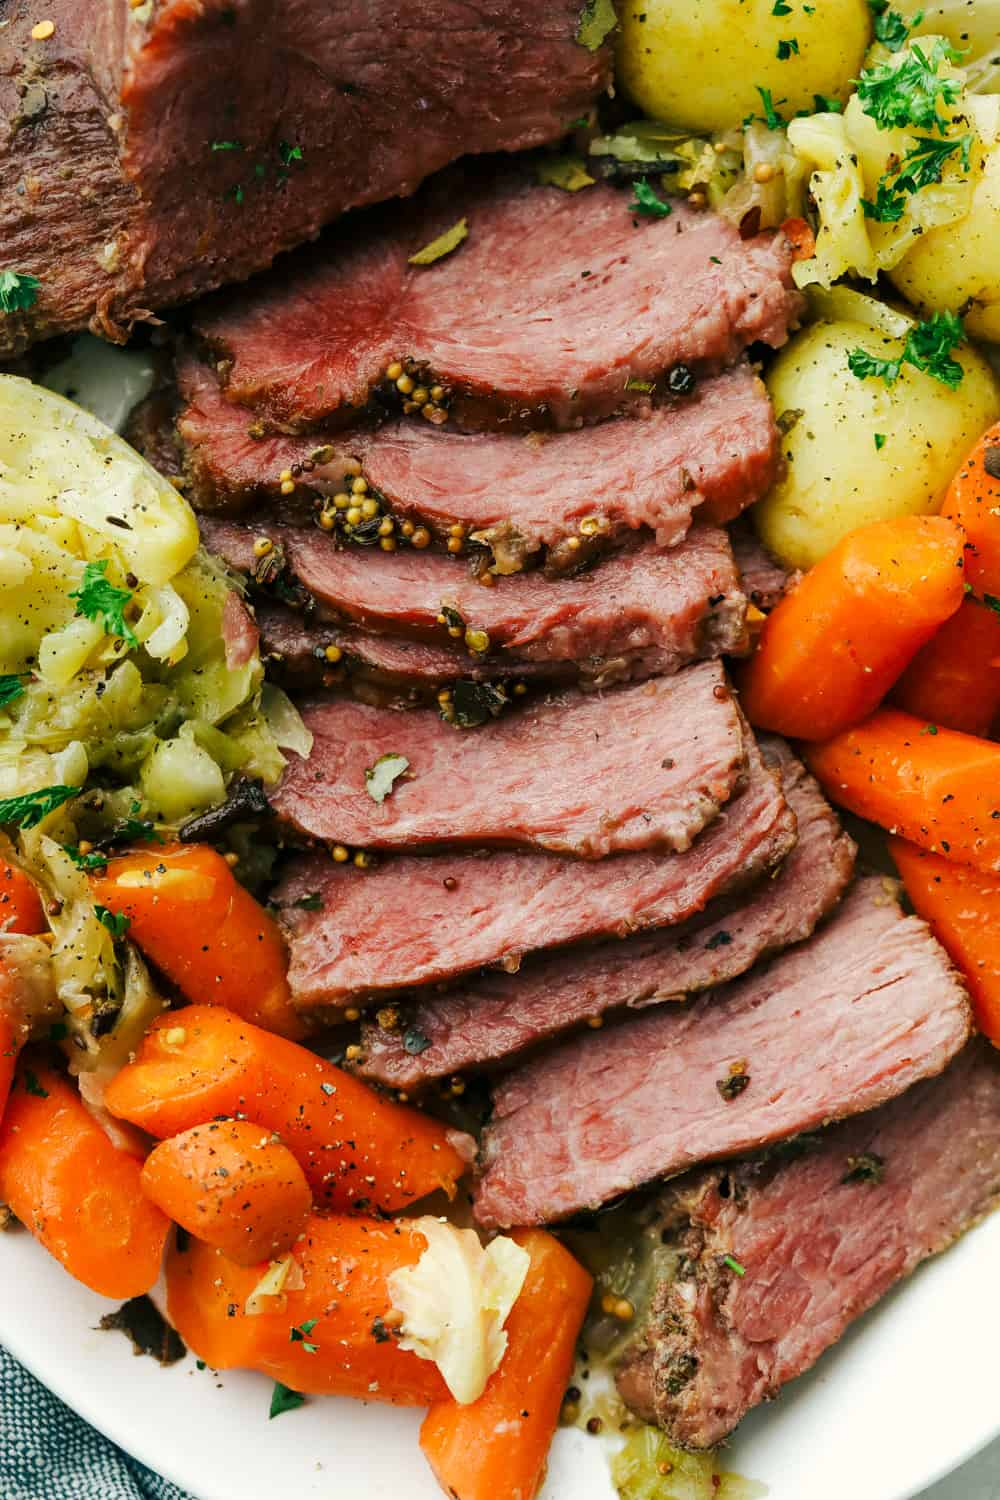 Sliced corned beef, cabbage, carrots, and potatoes on a plate.